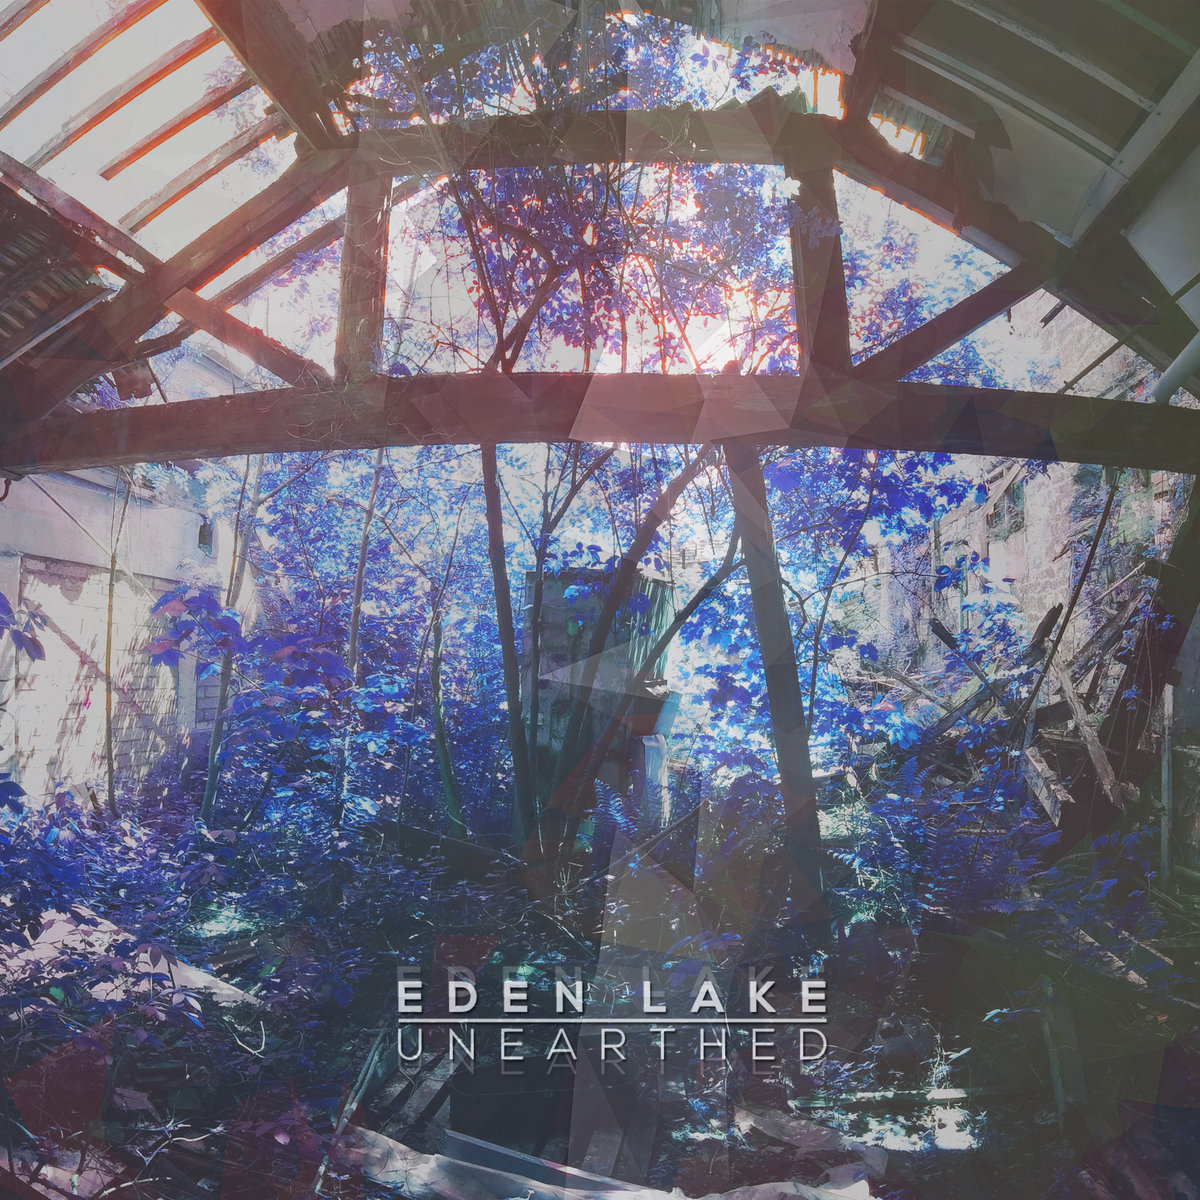 Eden Lake - Unearthed [single] (2015)